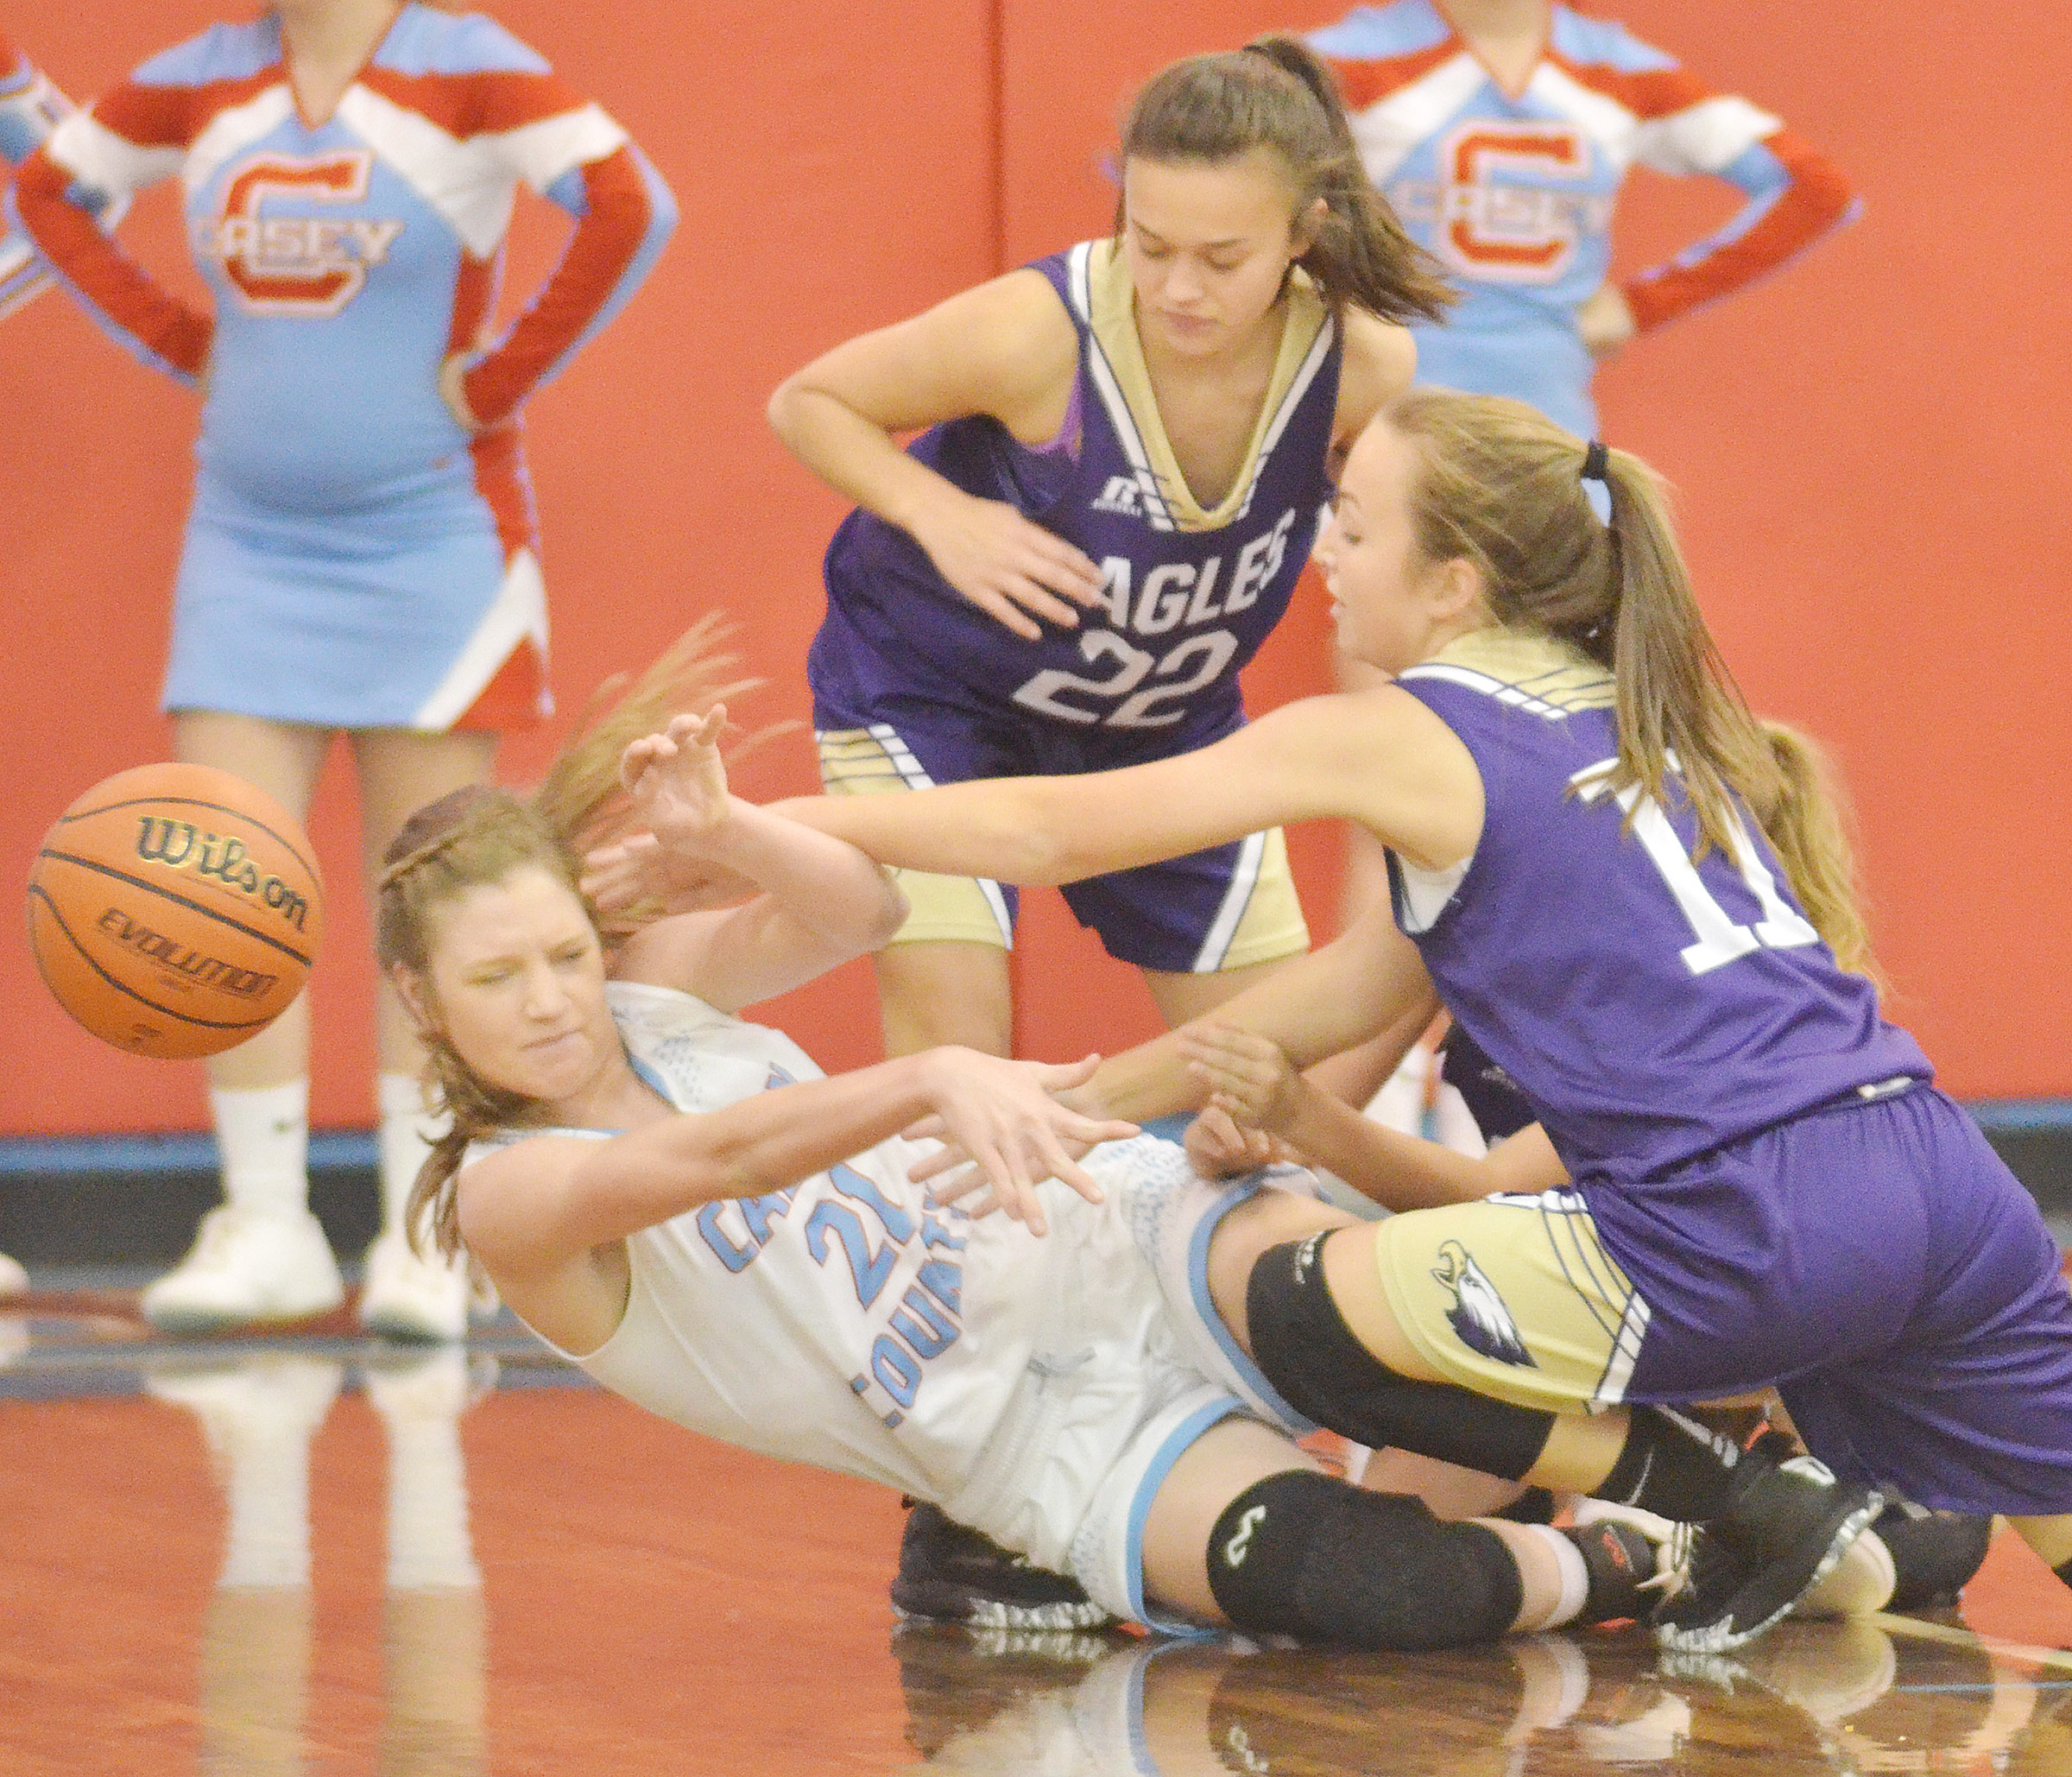 CMS eighth-graders Tayler Thompson, at left, and Lainey Watson battle for the ball.